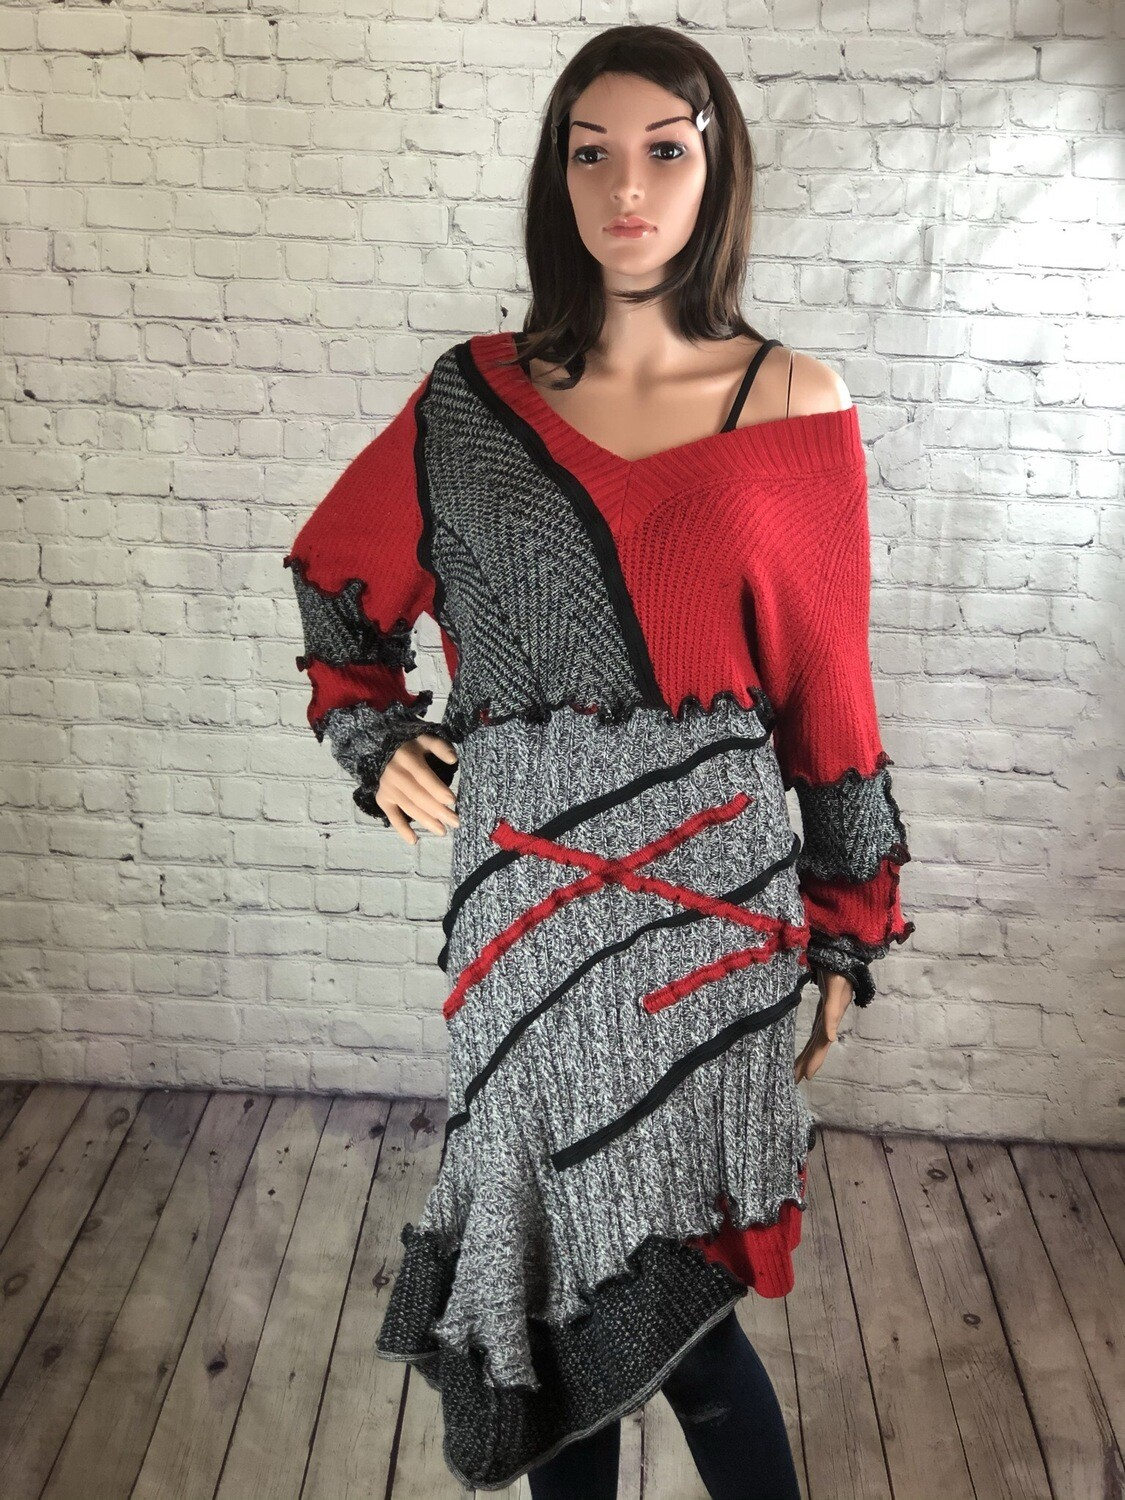 Eco friendly Recycled Sweater Dress Artsy Attractive Asymmetrical Ruffle Hem Fashionable Comfortable Dressy Casual Handmade Size XL